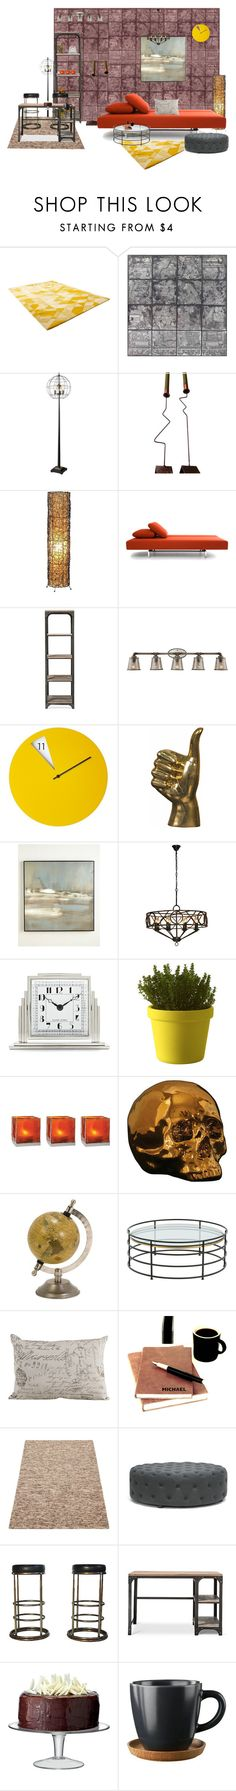 """My take on industrial interior"" by lindagama on Polyvore featuring interior, interiors, interior design, home, home decor, interior decorating, Cyan Design, Universal Lighting and Decor, Benson-Cobb Studios and Ralph Lauren Home"